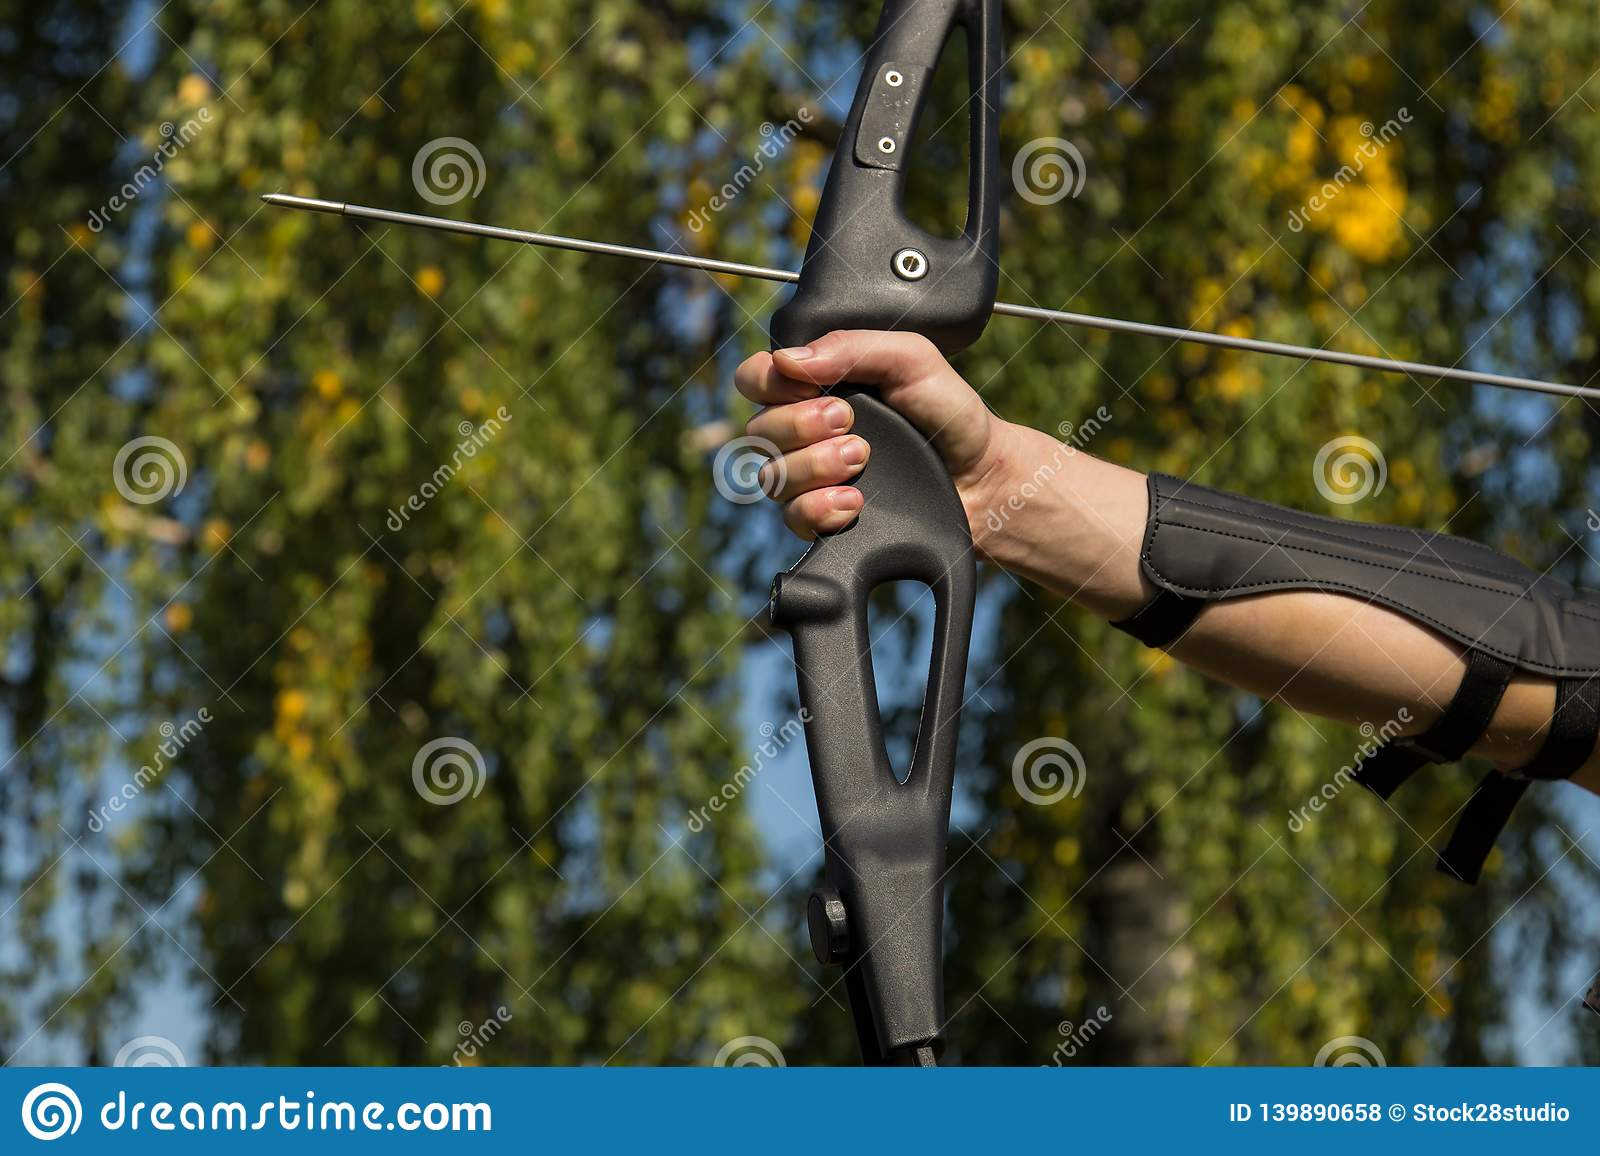 The man shoots from the bow. Close-up. Practice of archery